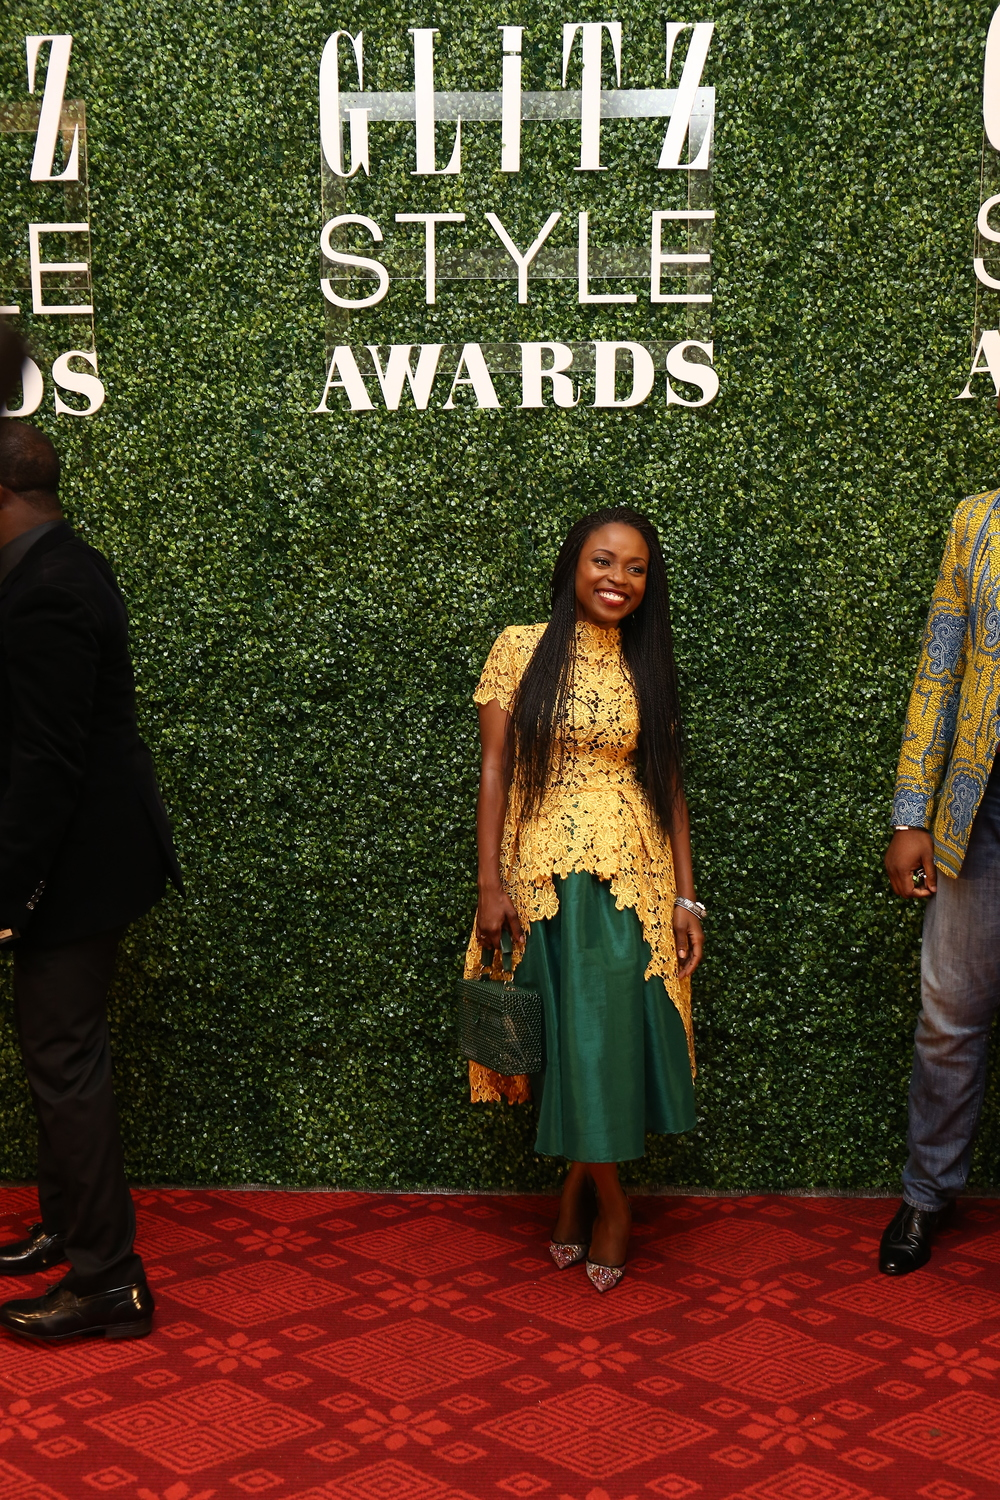 Aisha Ayensu in her brand Christie Brown